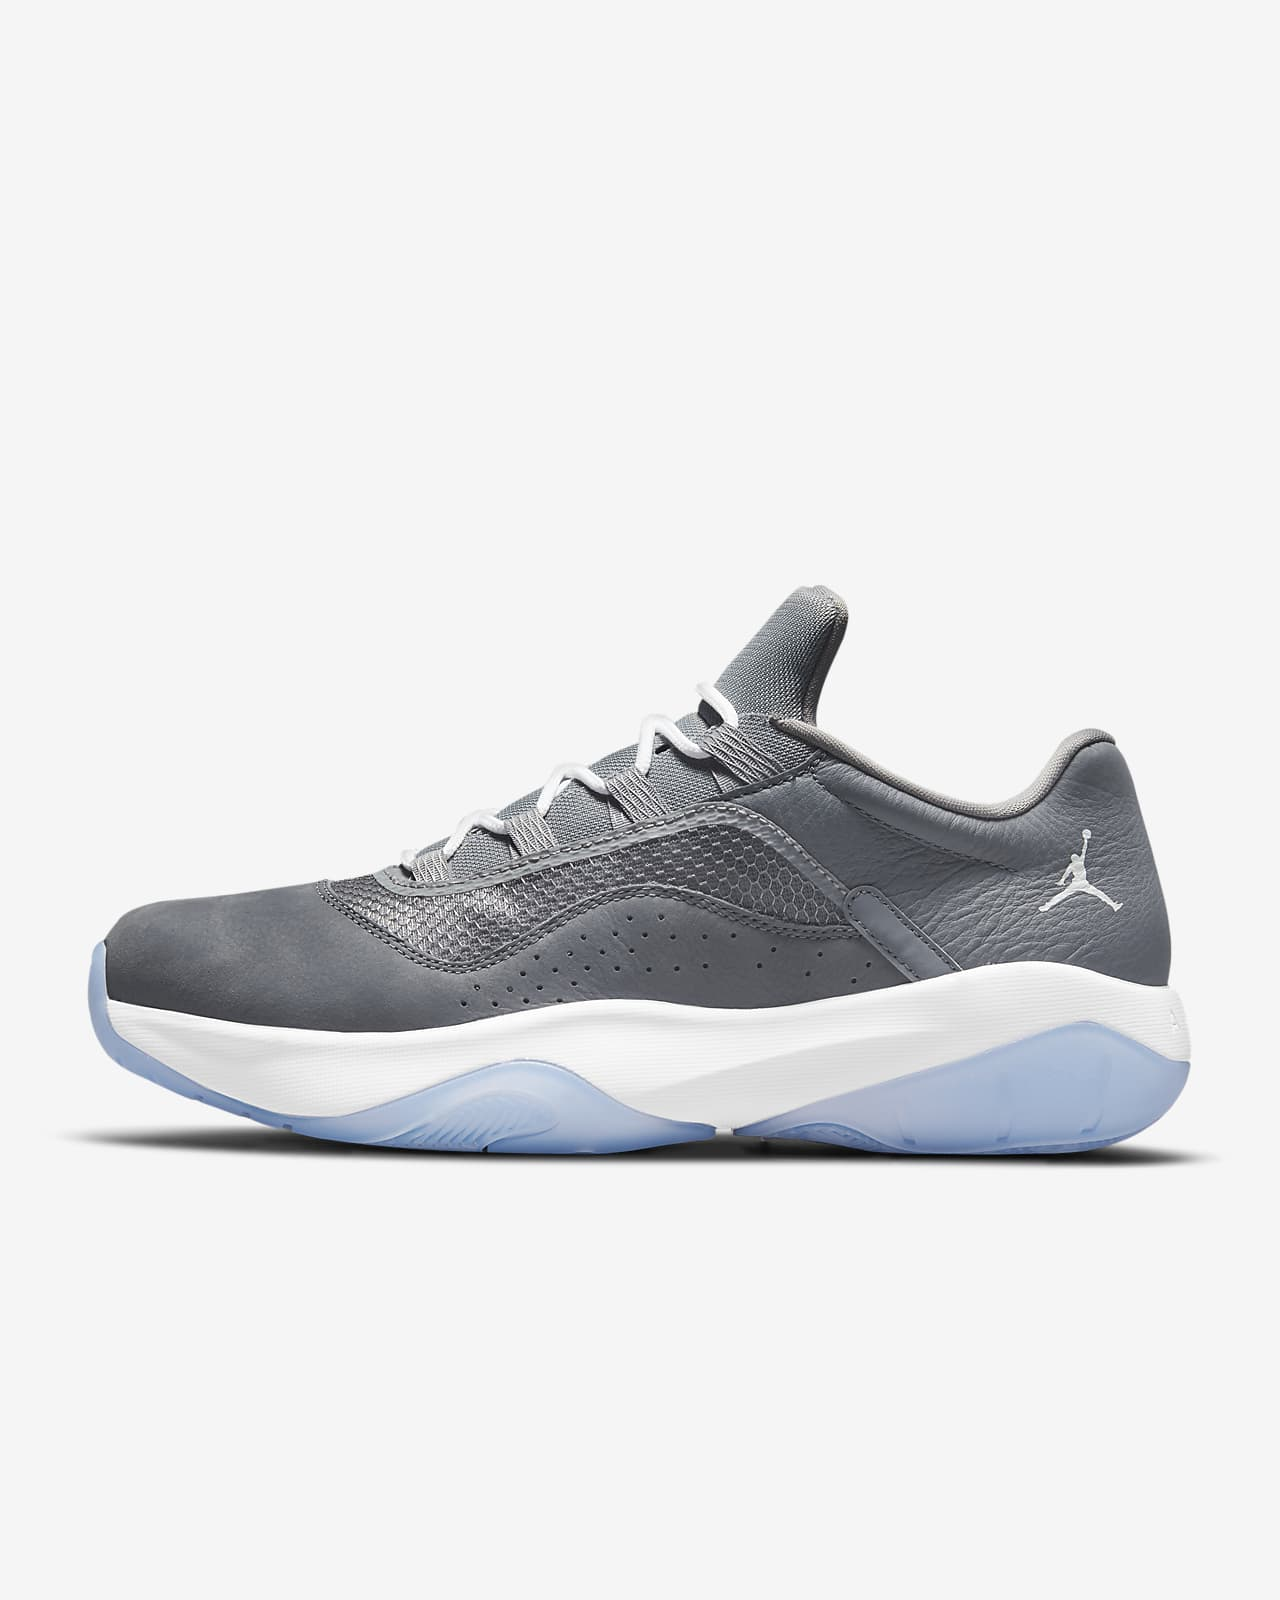 Air Jordan 11 CMFT Low Herrenschuh